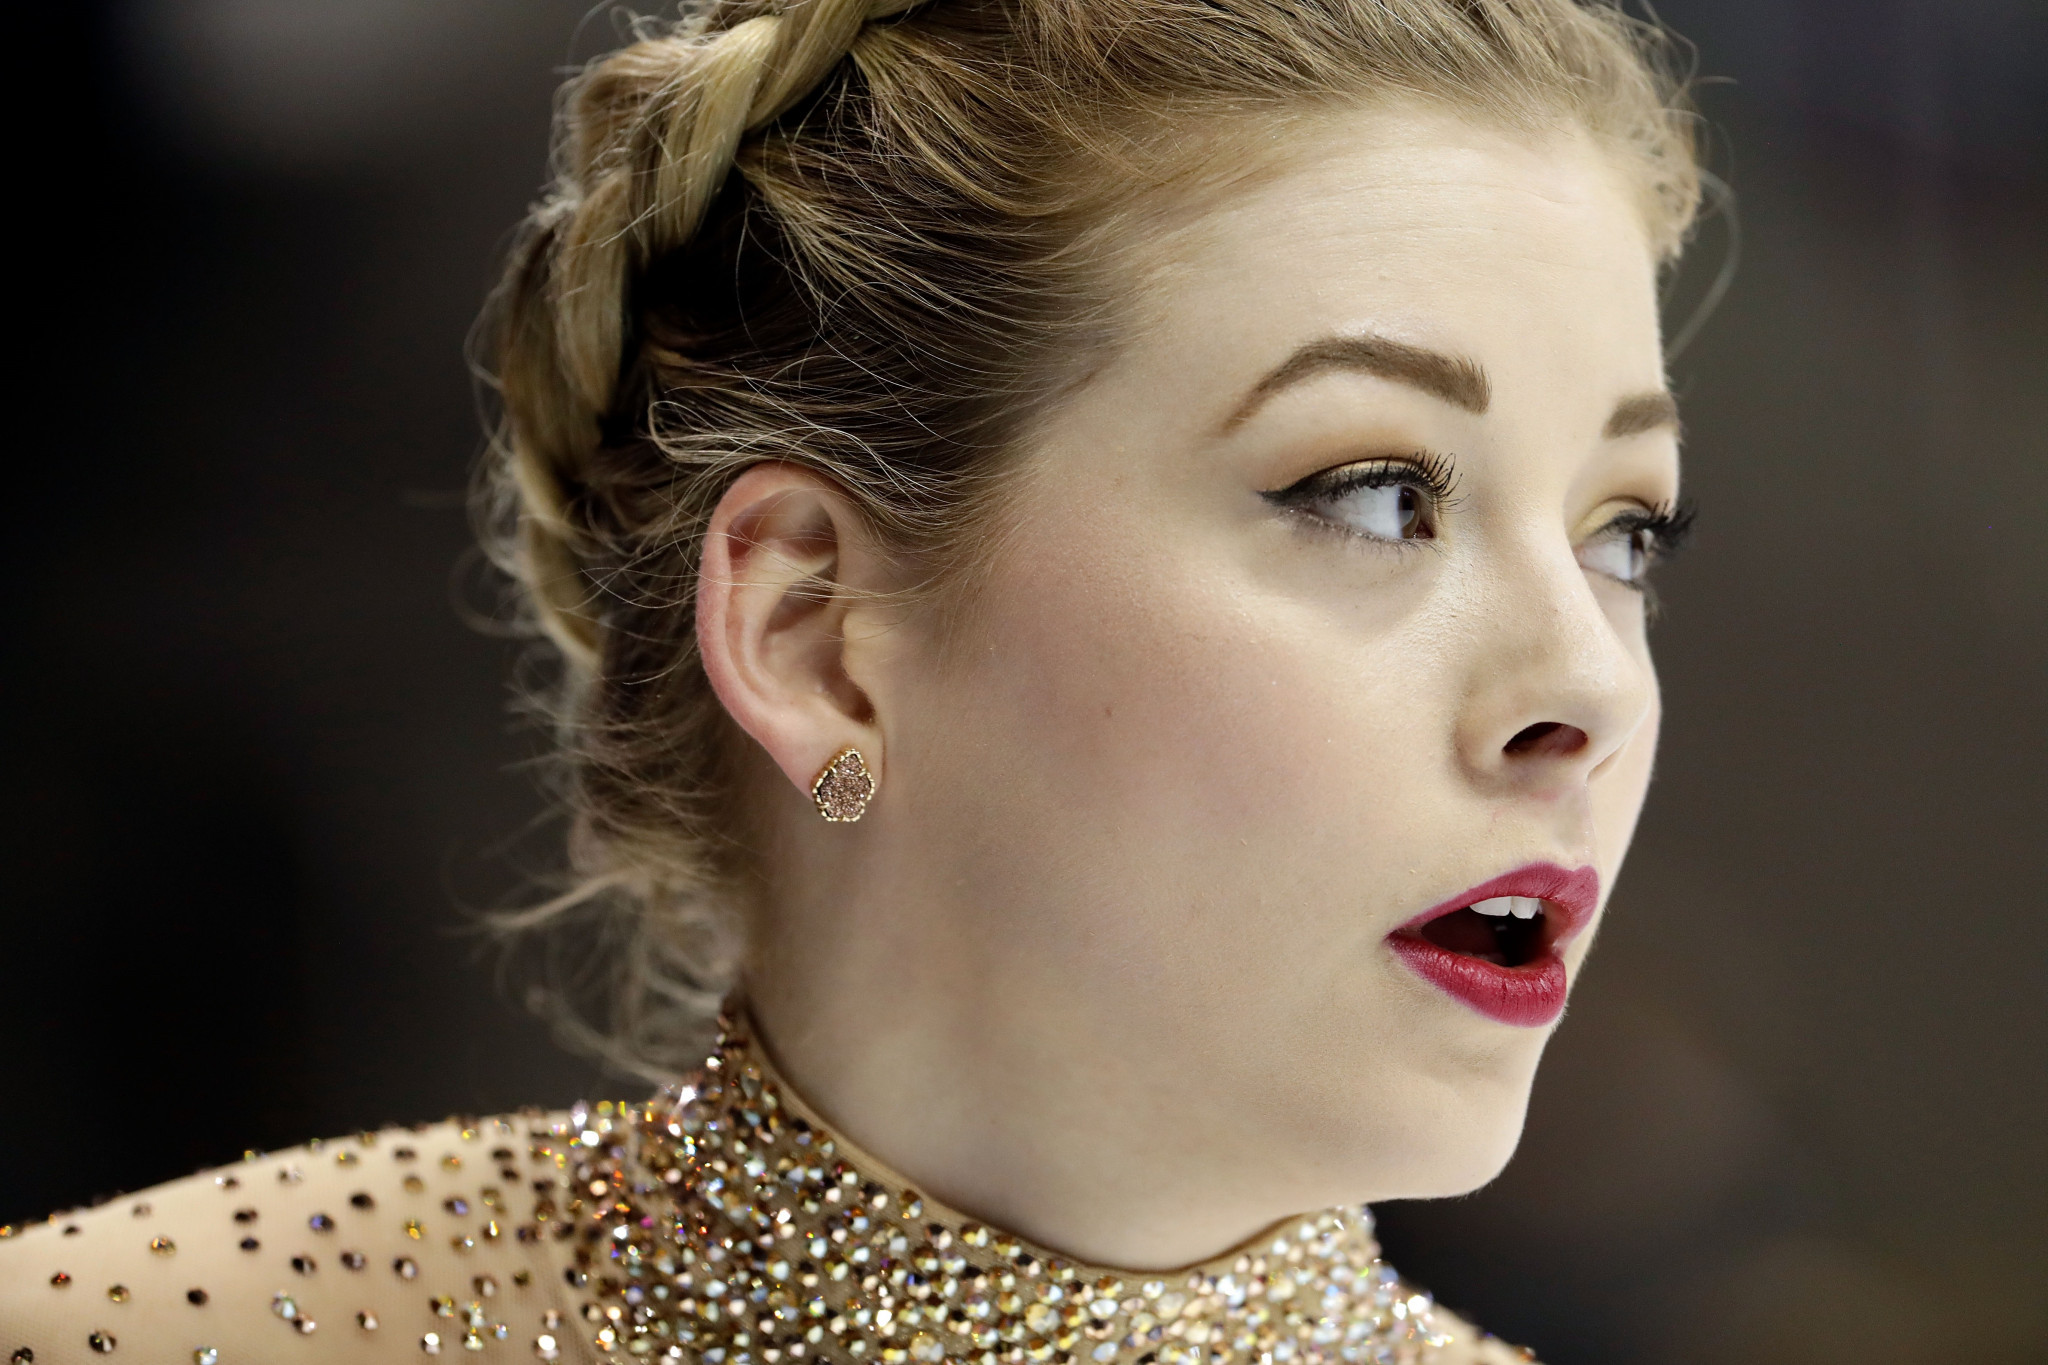 American figure skater Gracie Gold's chances of competing at the Pyeongchang 2018 Winter Olympic Games have ended ©Getty Images